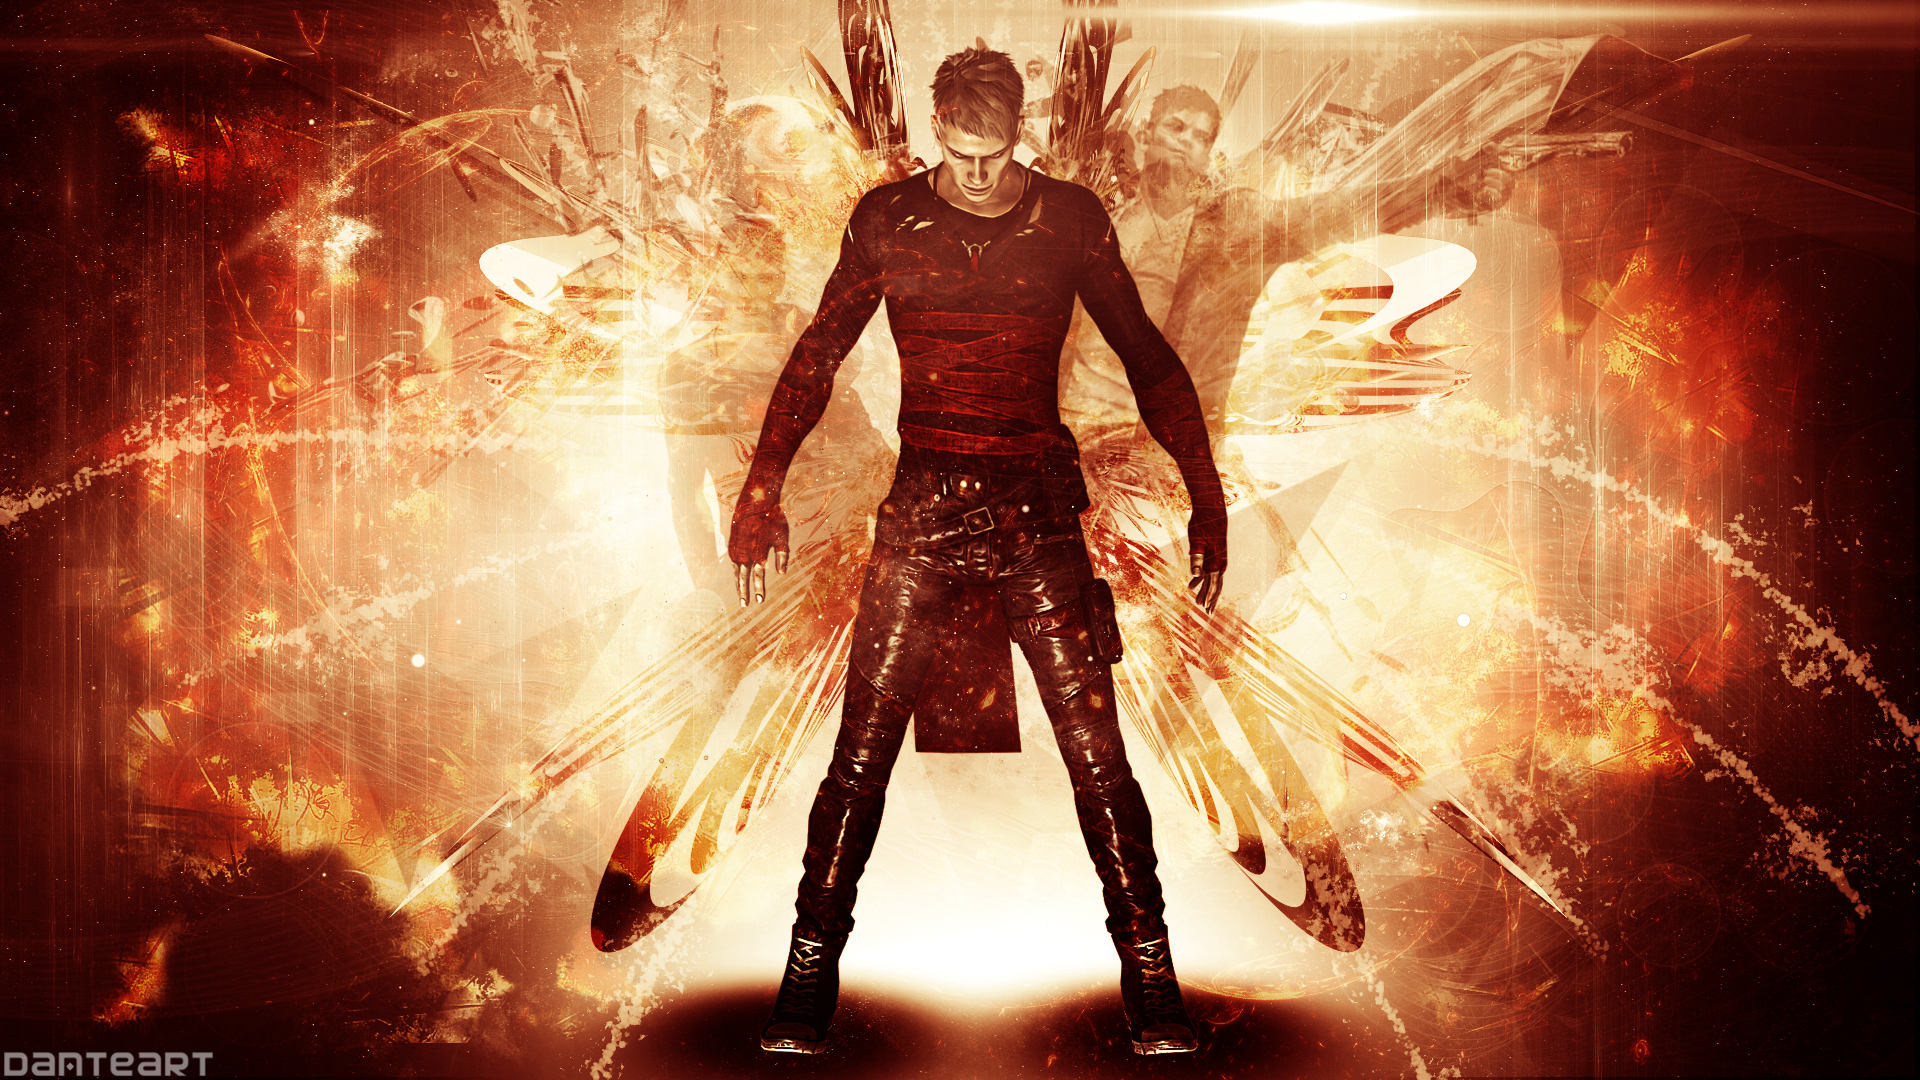 Dmc Devil May Cry Neo Dante Wallpaper By Danteartwallpapers On